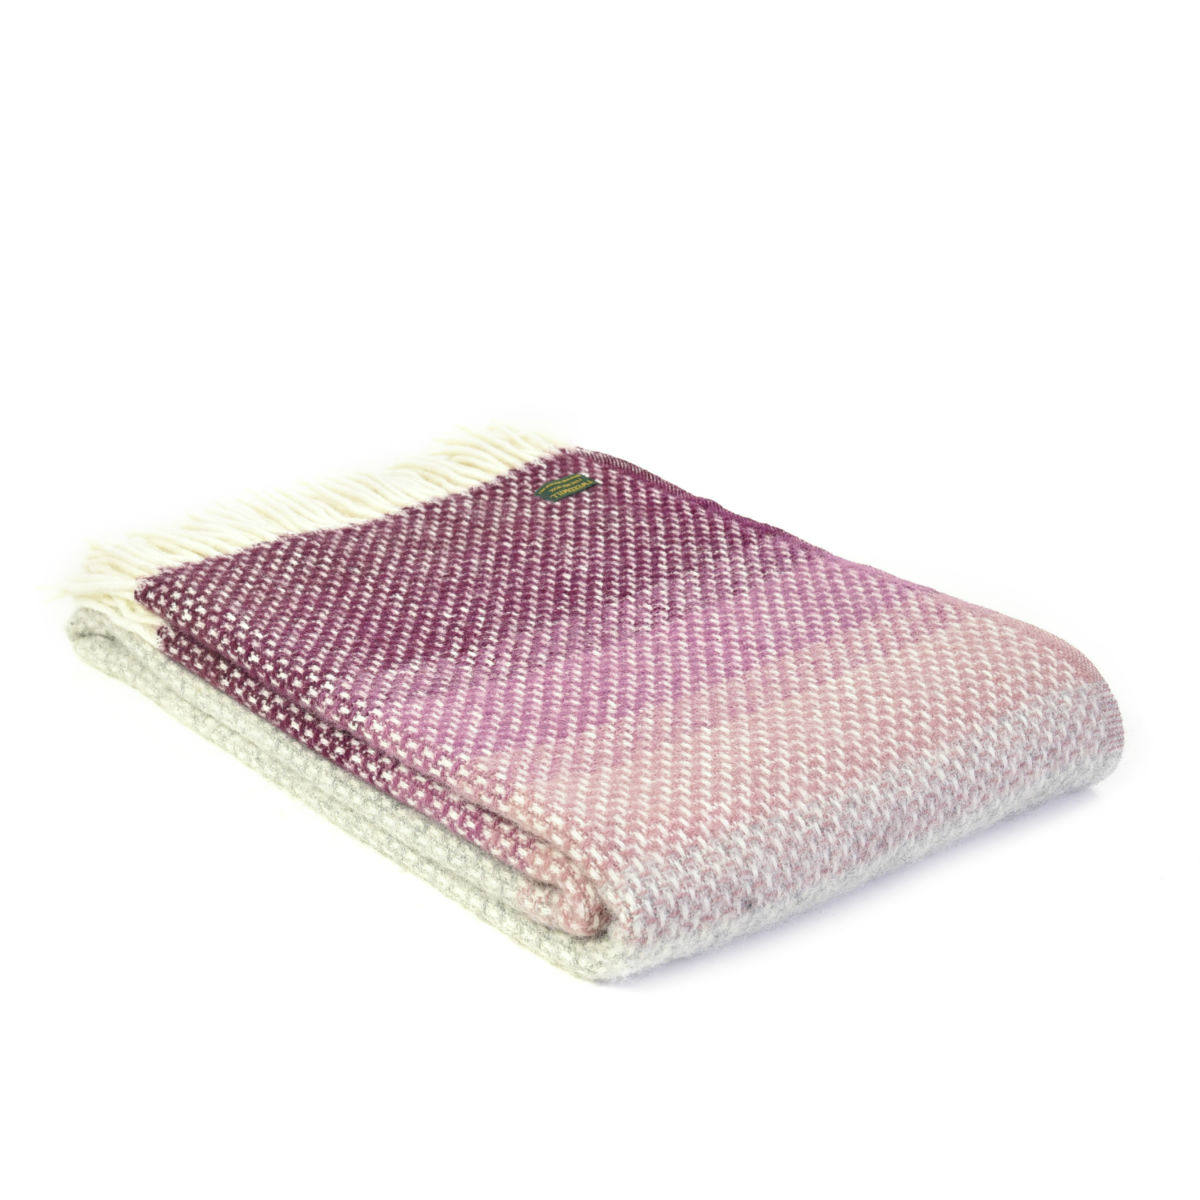 Ombre Rosewood Lifestyle Throw | Restoration Yard